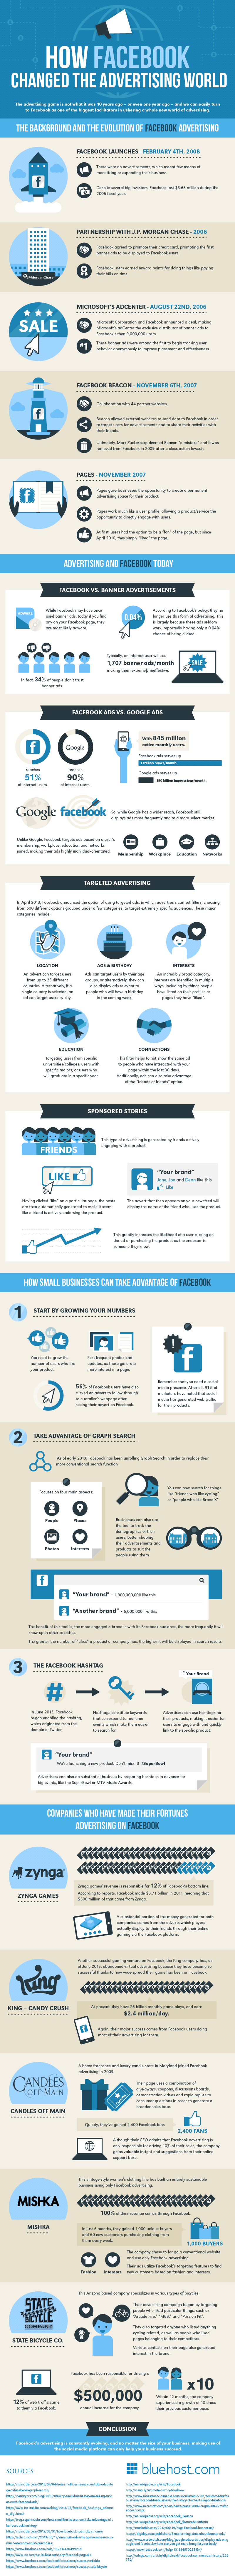 The Background And Evolution Of Facebook Advertising [INFOGRAPHIC]